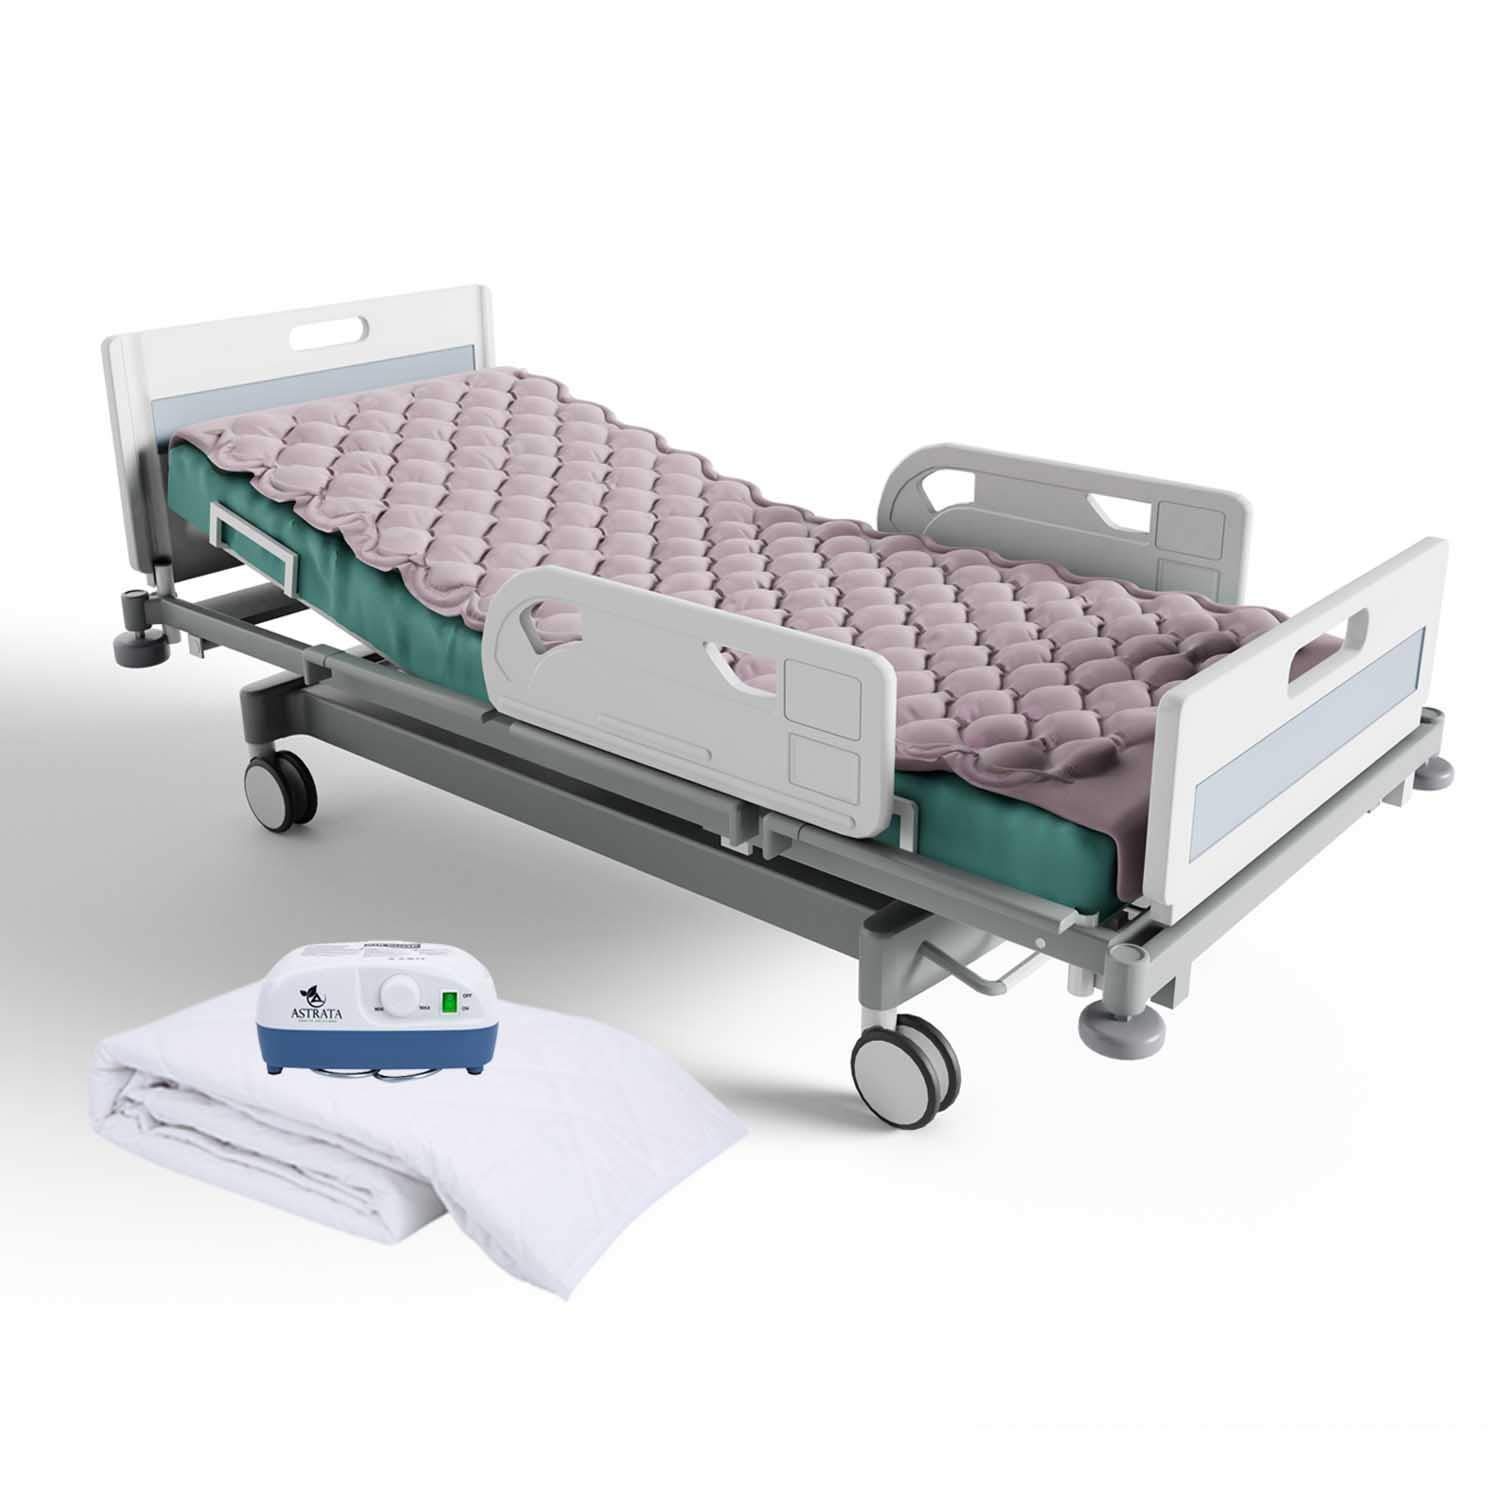 Alternating Pressure Mattress Include Electric Air Pump and Inflatable Mattress Pads with Bed Cover - Prevent